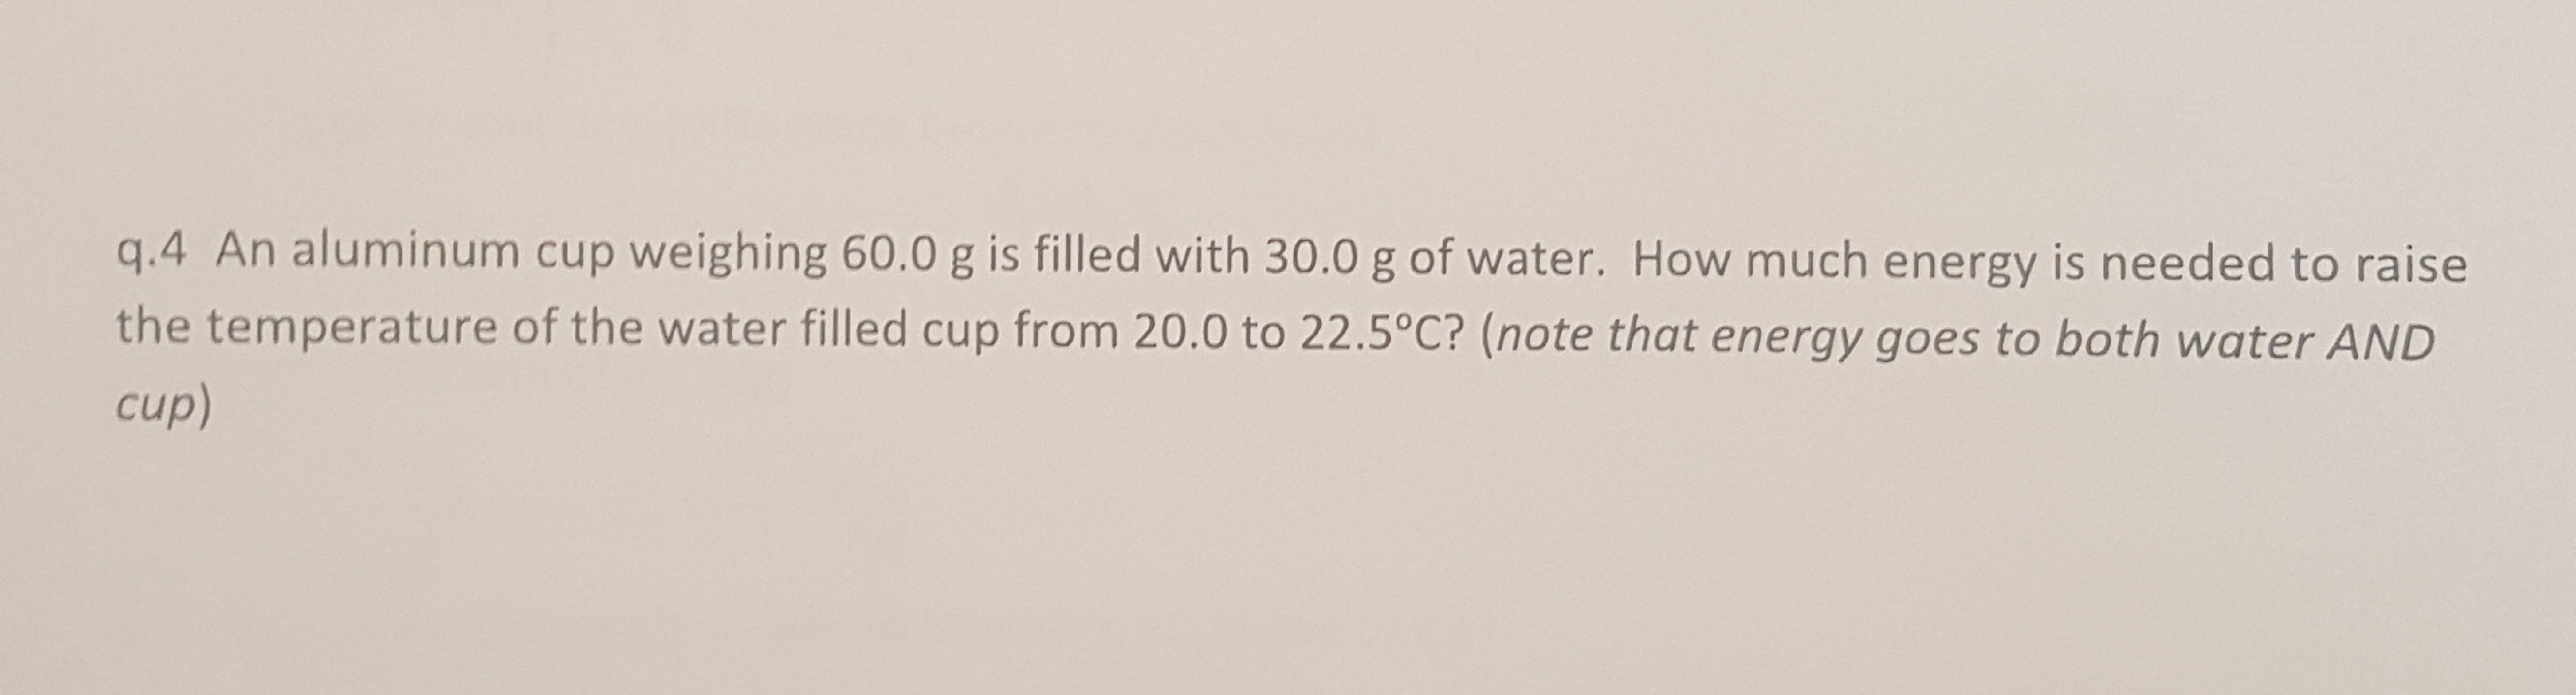 q.4 An aluminum cup weighing 60.0 g is filled with 30.0 g of water. How much energy is needed to raise the temperature of the water filled cup from 20.0 to 22.5°C? (note that energy goes to both water AND cup)